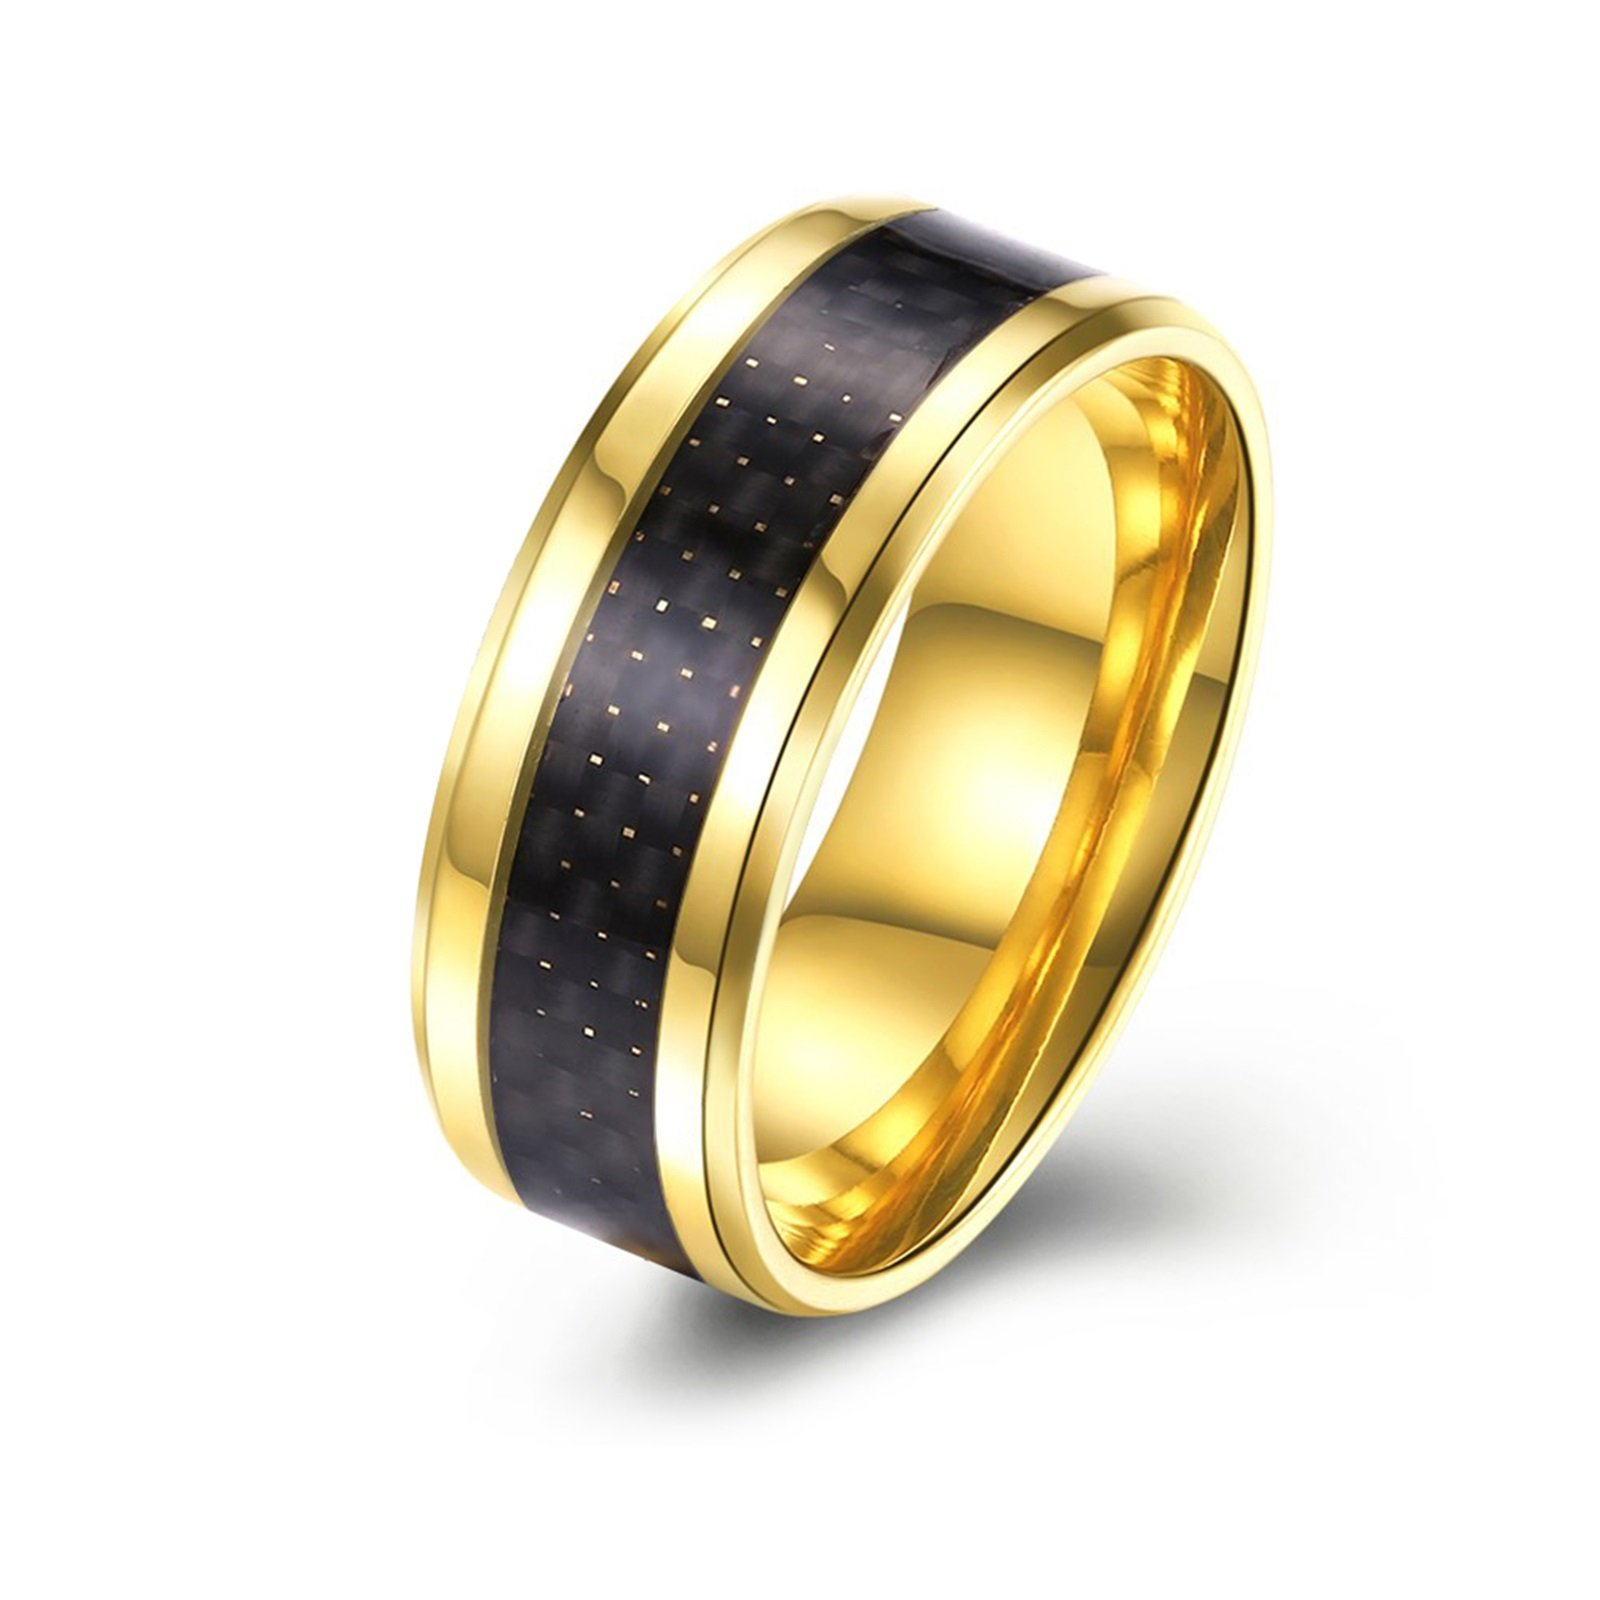 Epinki Stainless Steel Wedding Rings for Men Black Carbon Fiber Inlaid 8MM Gold Ring Size 9 Men Accessories